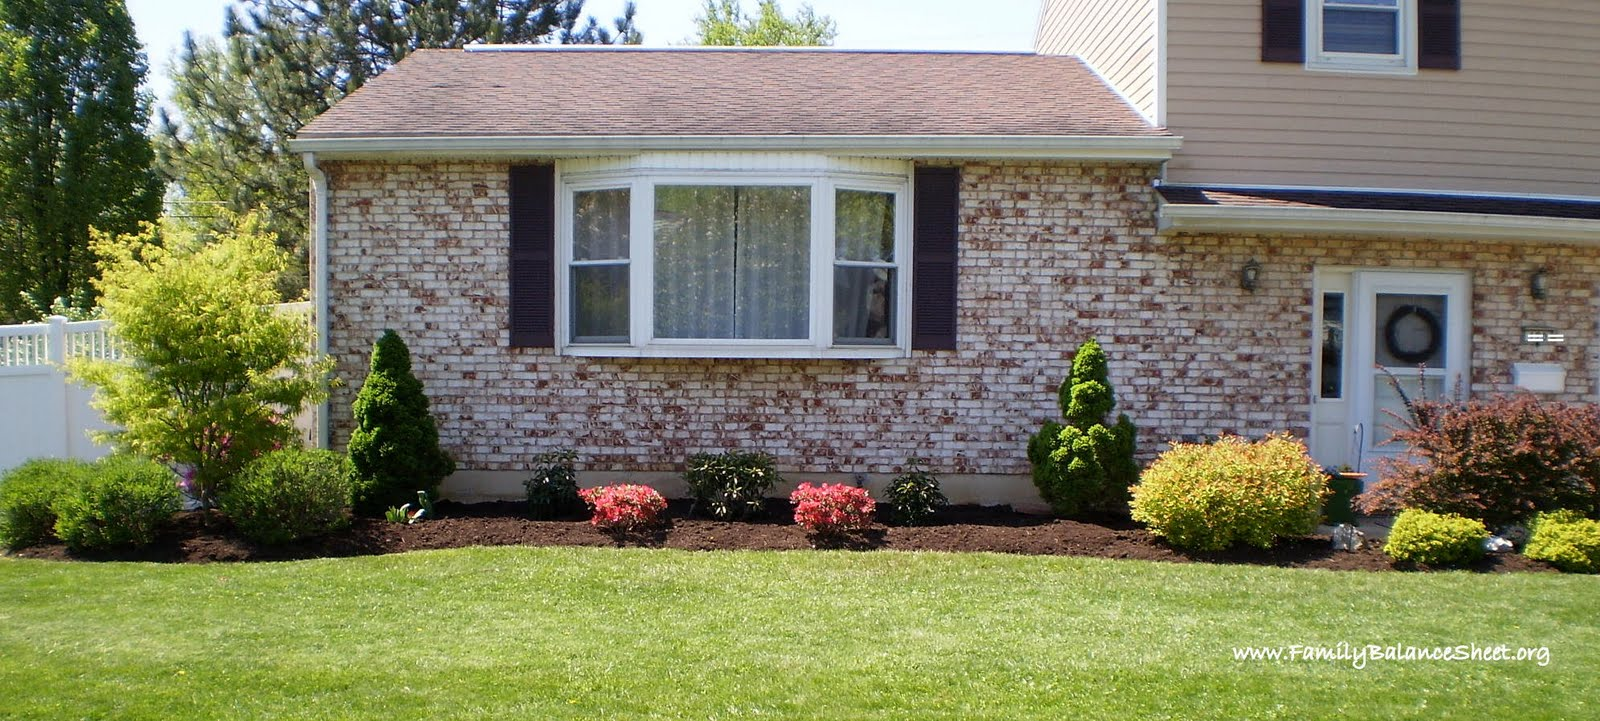 15 tips to help you design your front yard save money too for Front lawn ideas